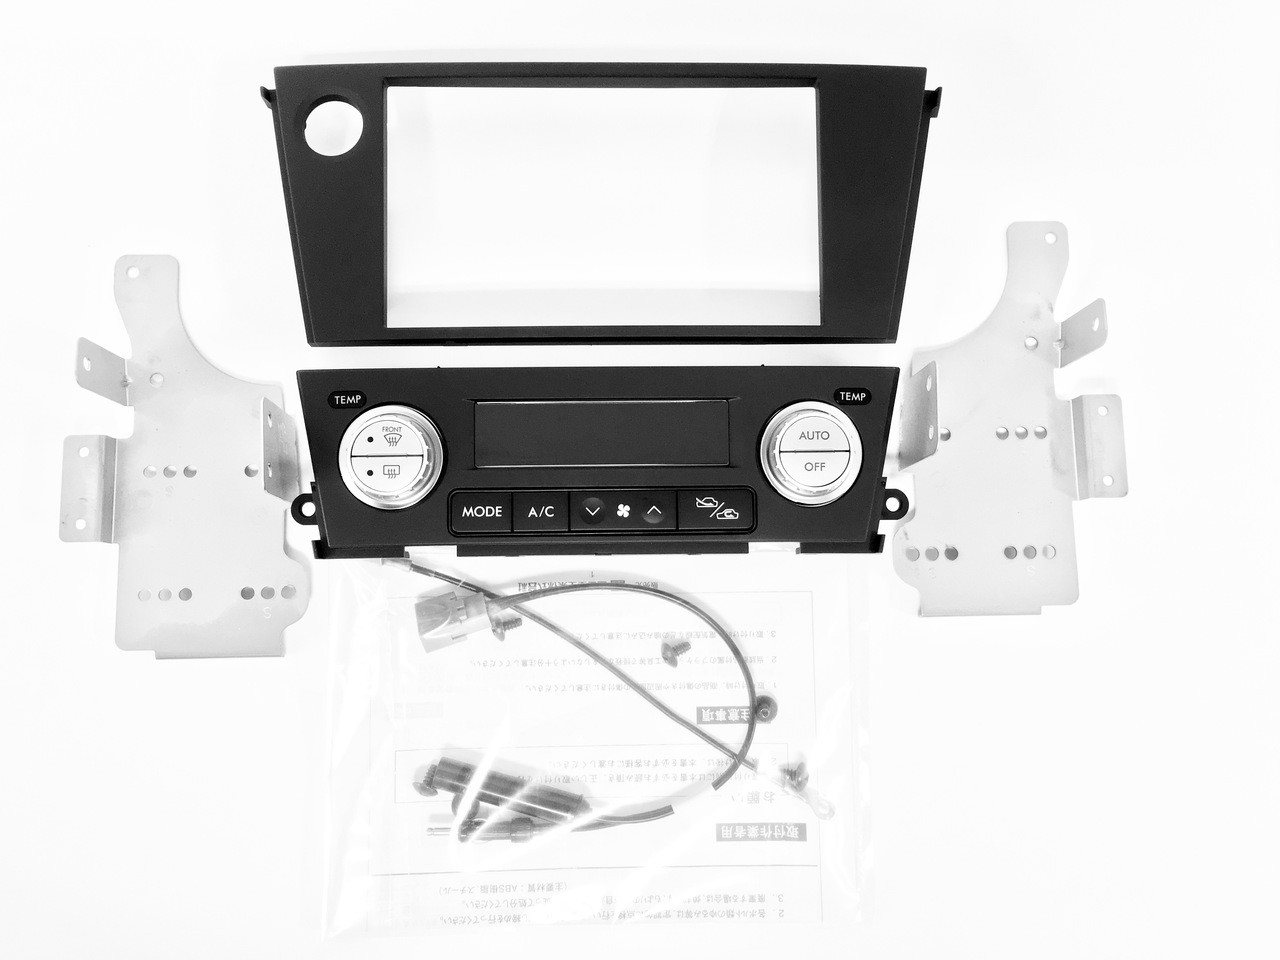 Subaru JDM H6217AG911 Dual Zone AV Panel Set contents at AVOJDM